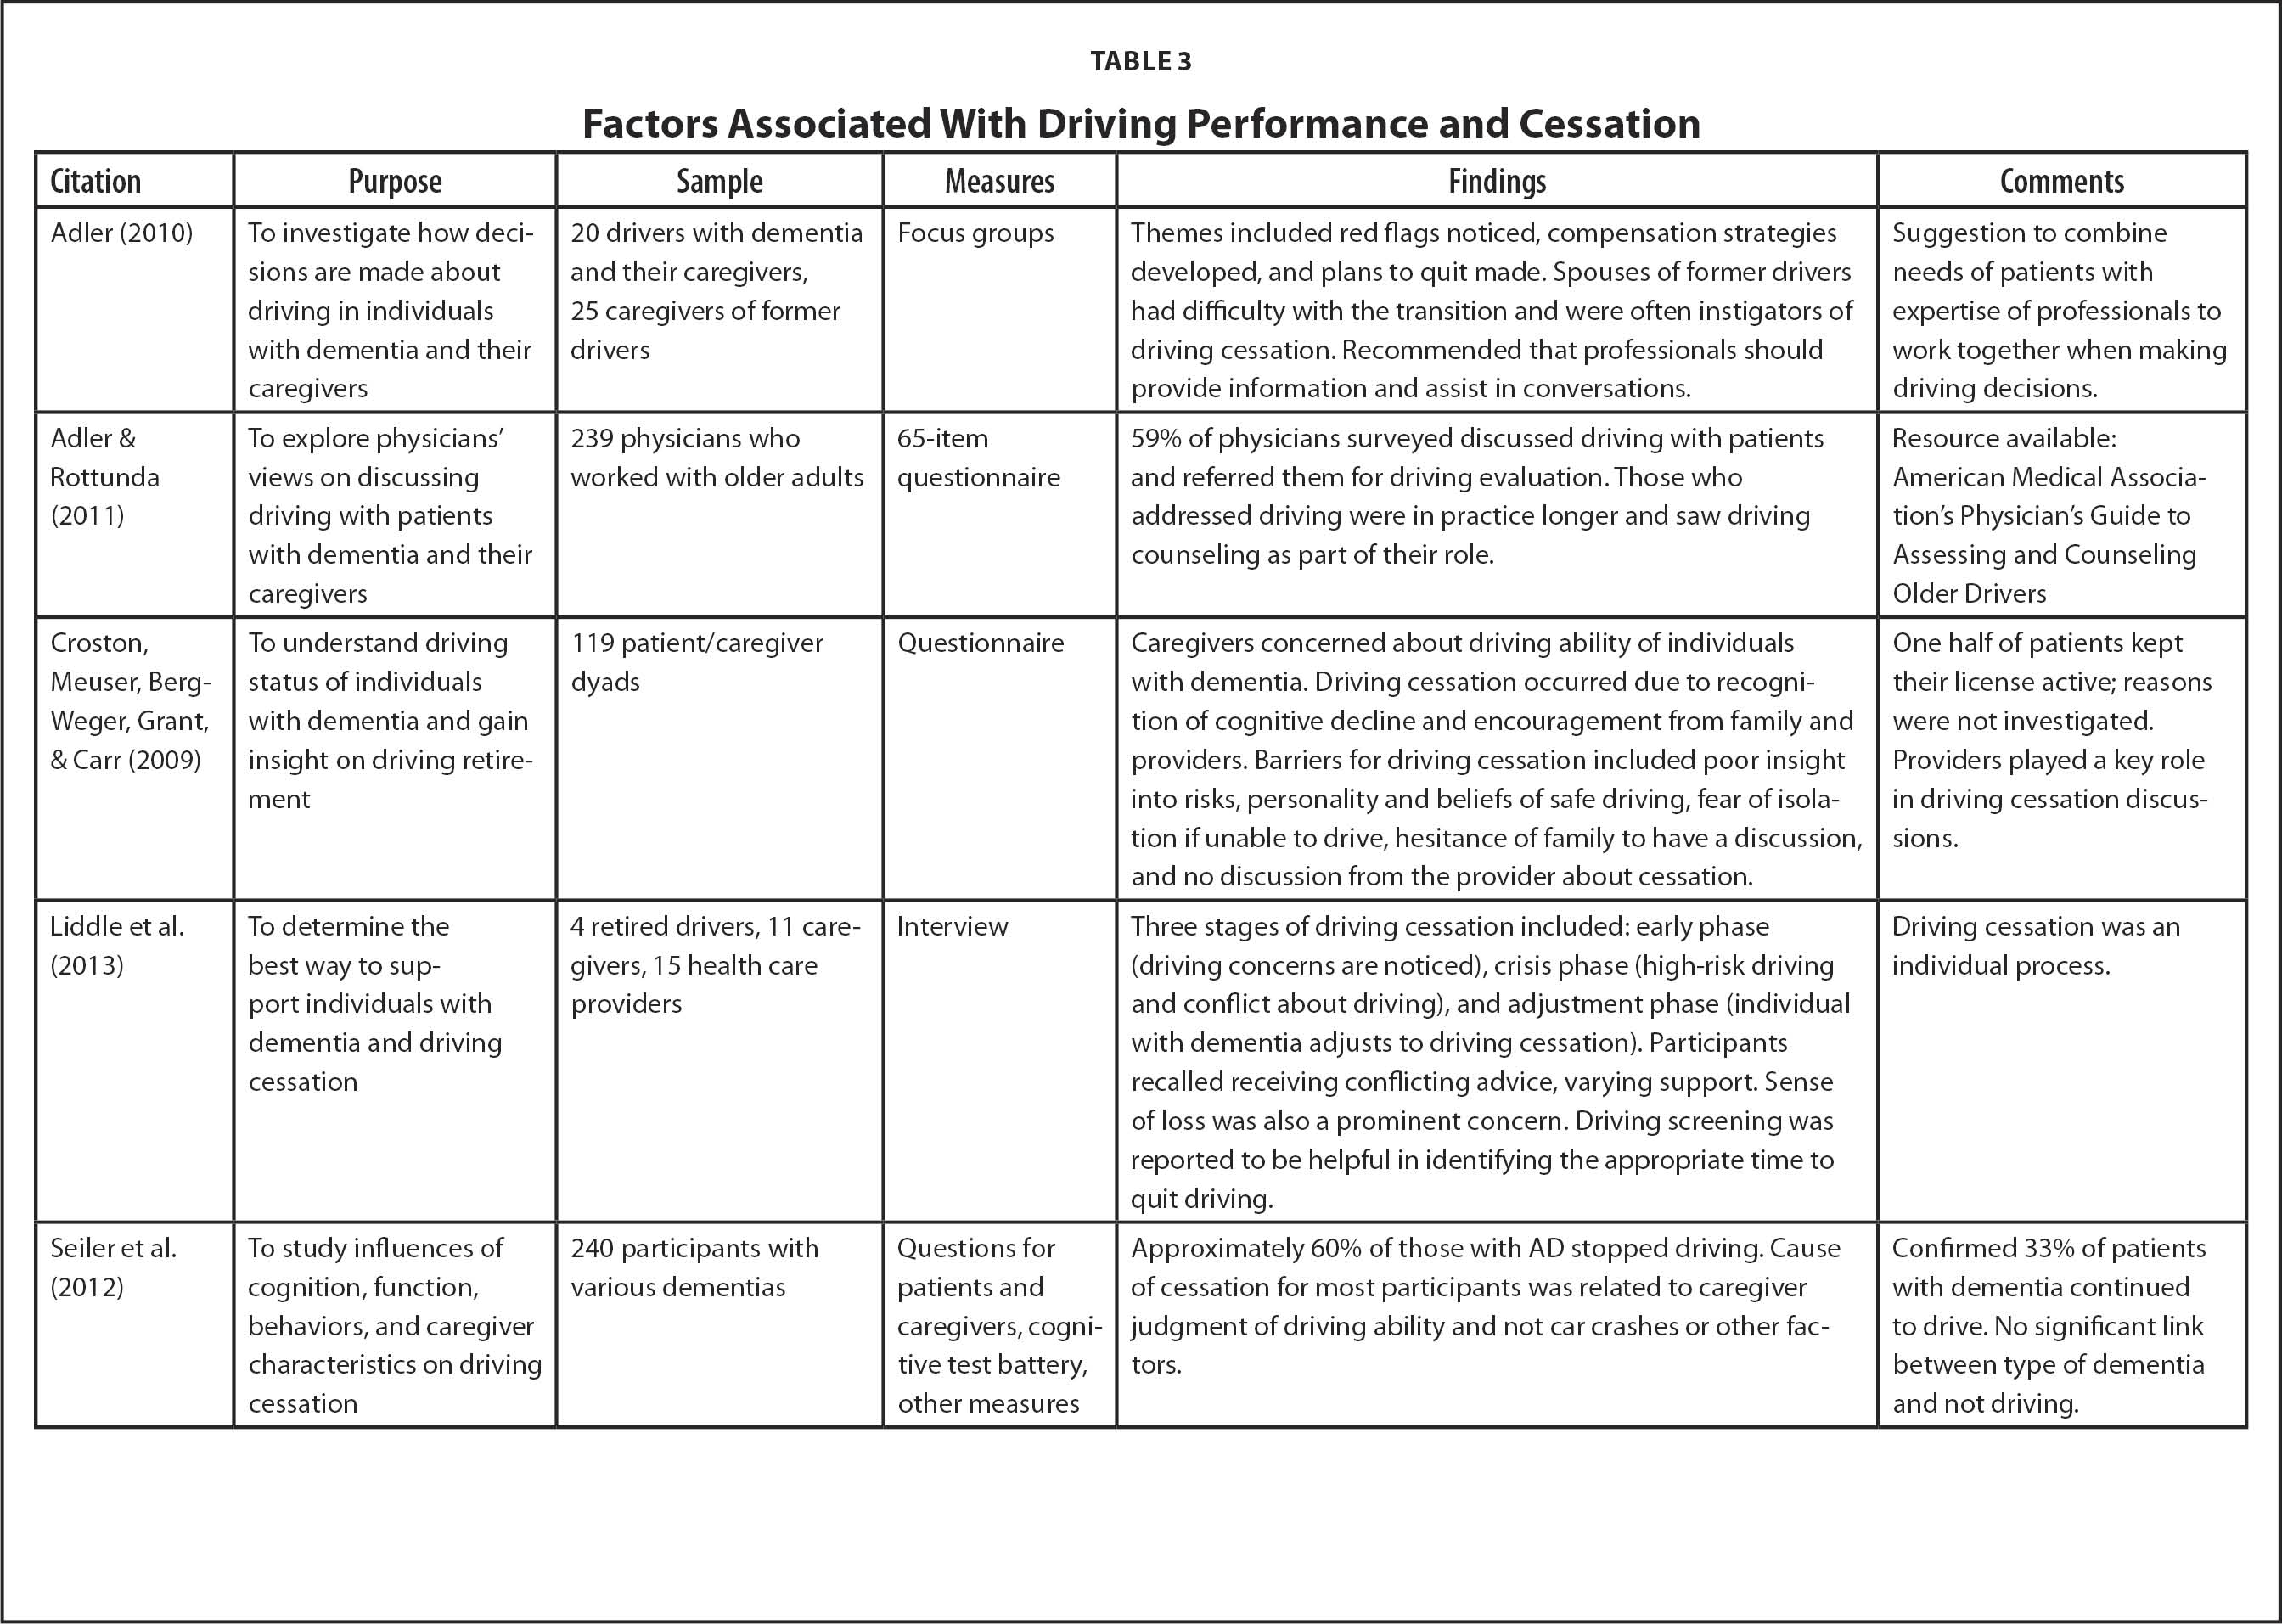 Factors Associated With Driving Performance and Cessation